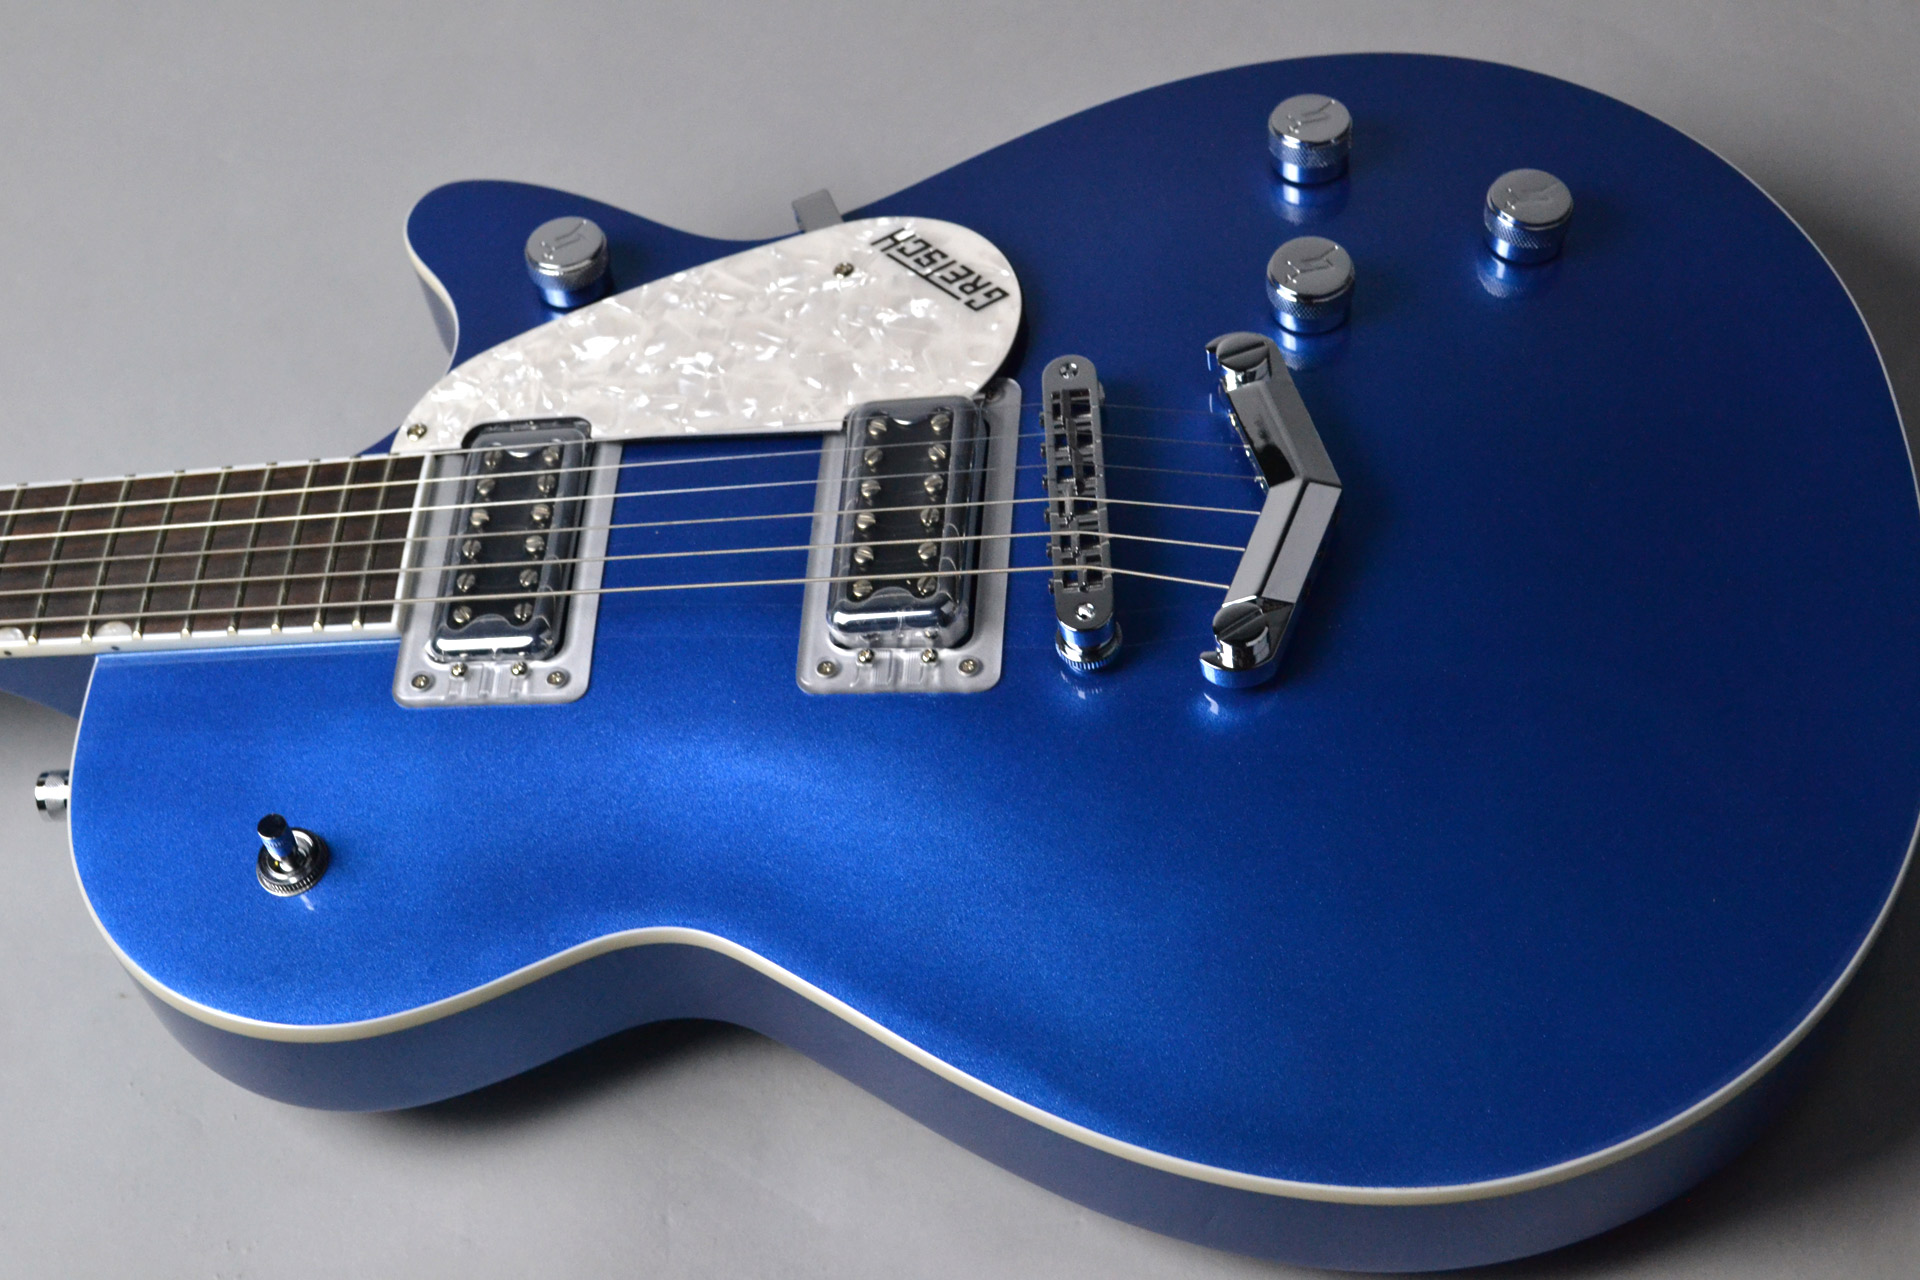 G5435 Limited Edition Electromatic Pro Jet™, Fairlane Blueのケース・その他画像